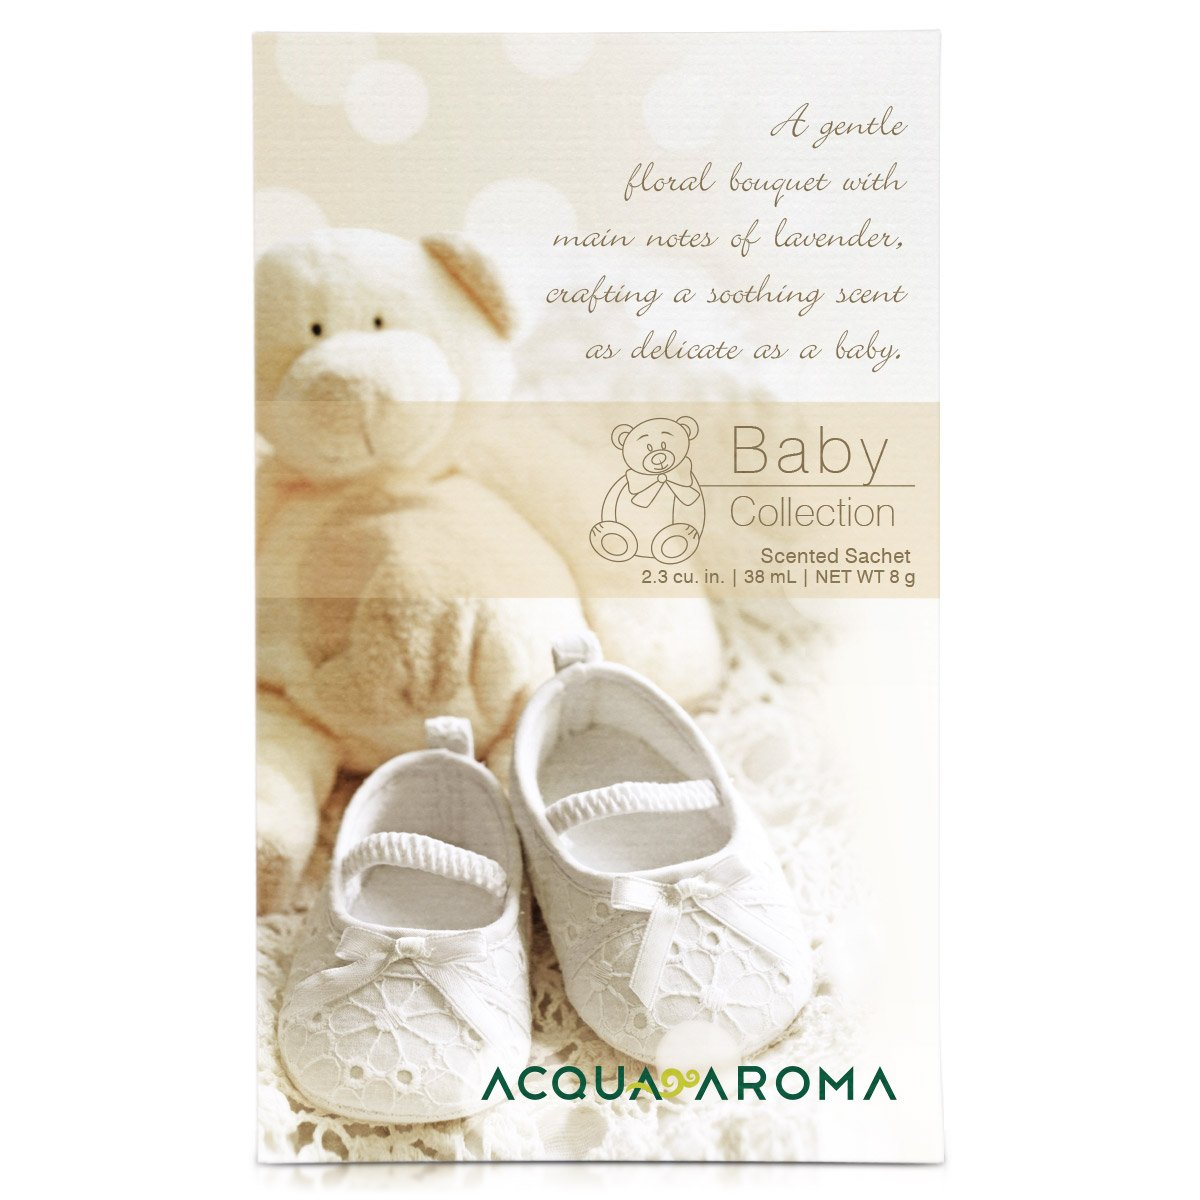 38mL//8g Acqua Aroma Baby Collection Scented Sachet 2.3 cu in.